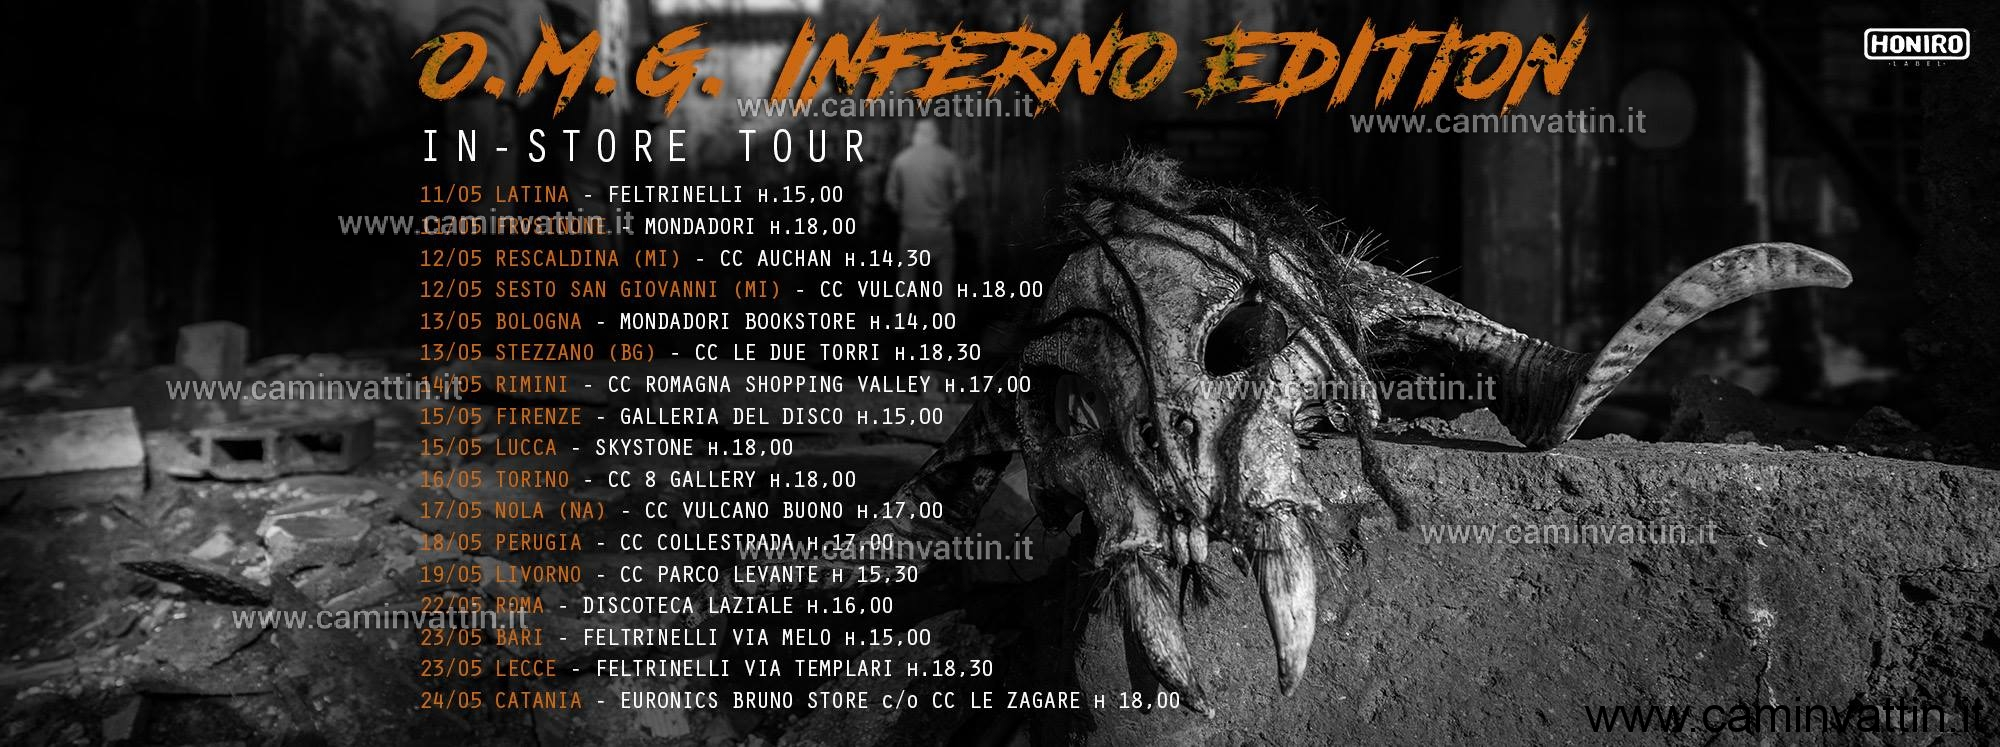 mostro omg inferno edition instore tour